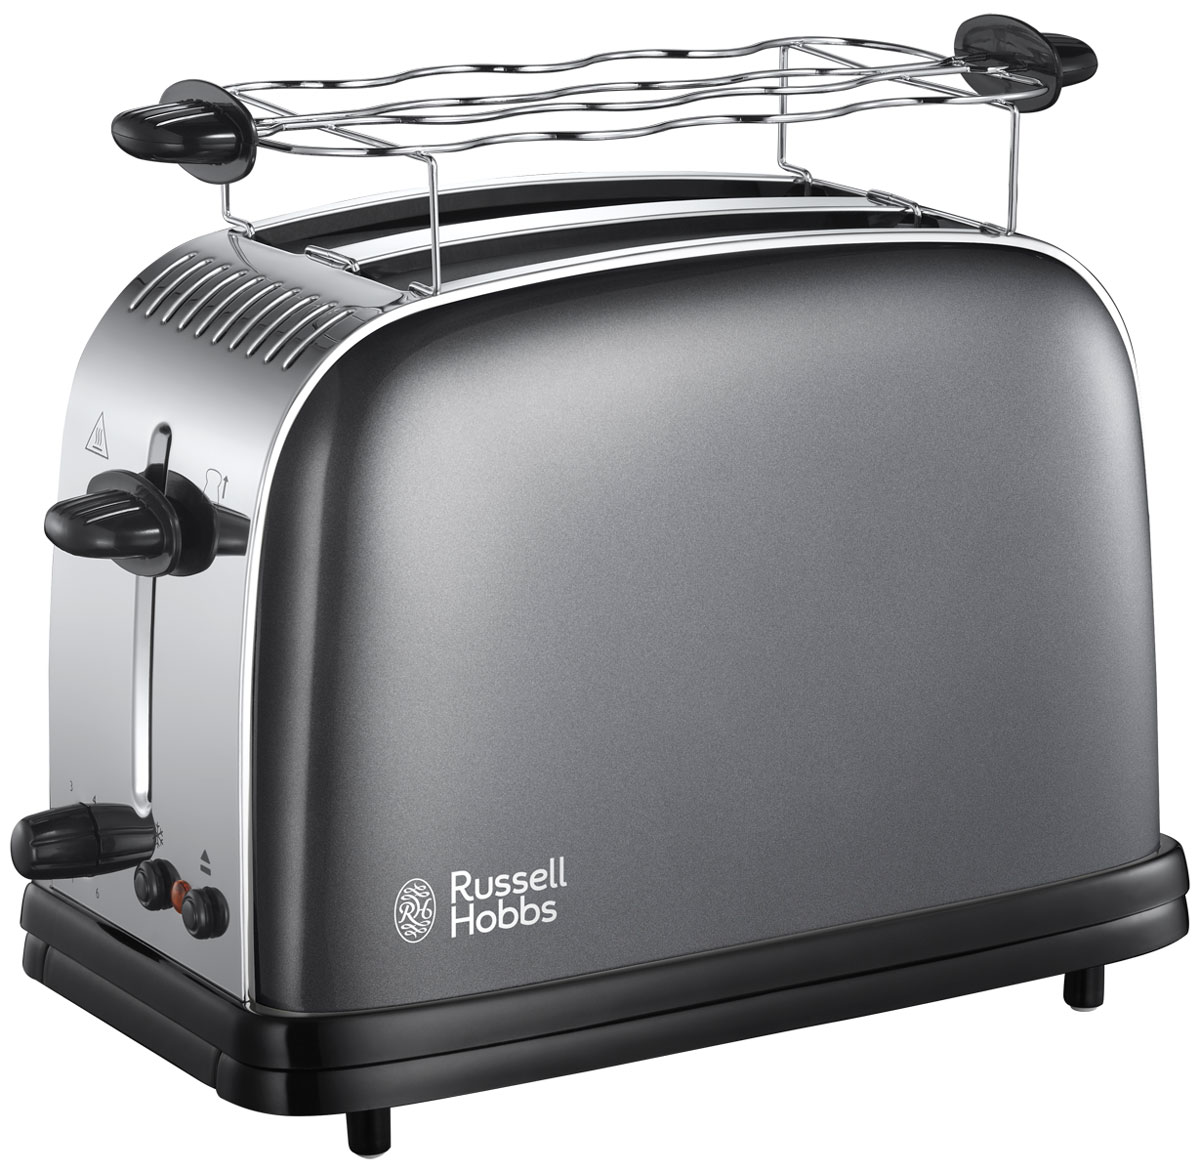 Russell Hobbs 23332-56 тостер аксессуар для волос new hairdisk sytle updo l 23332